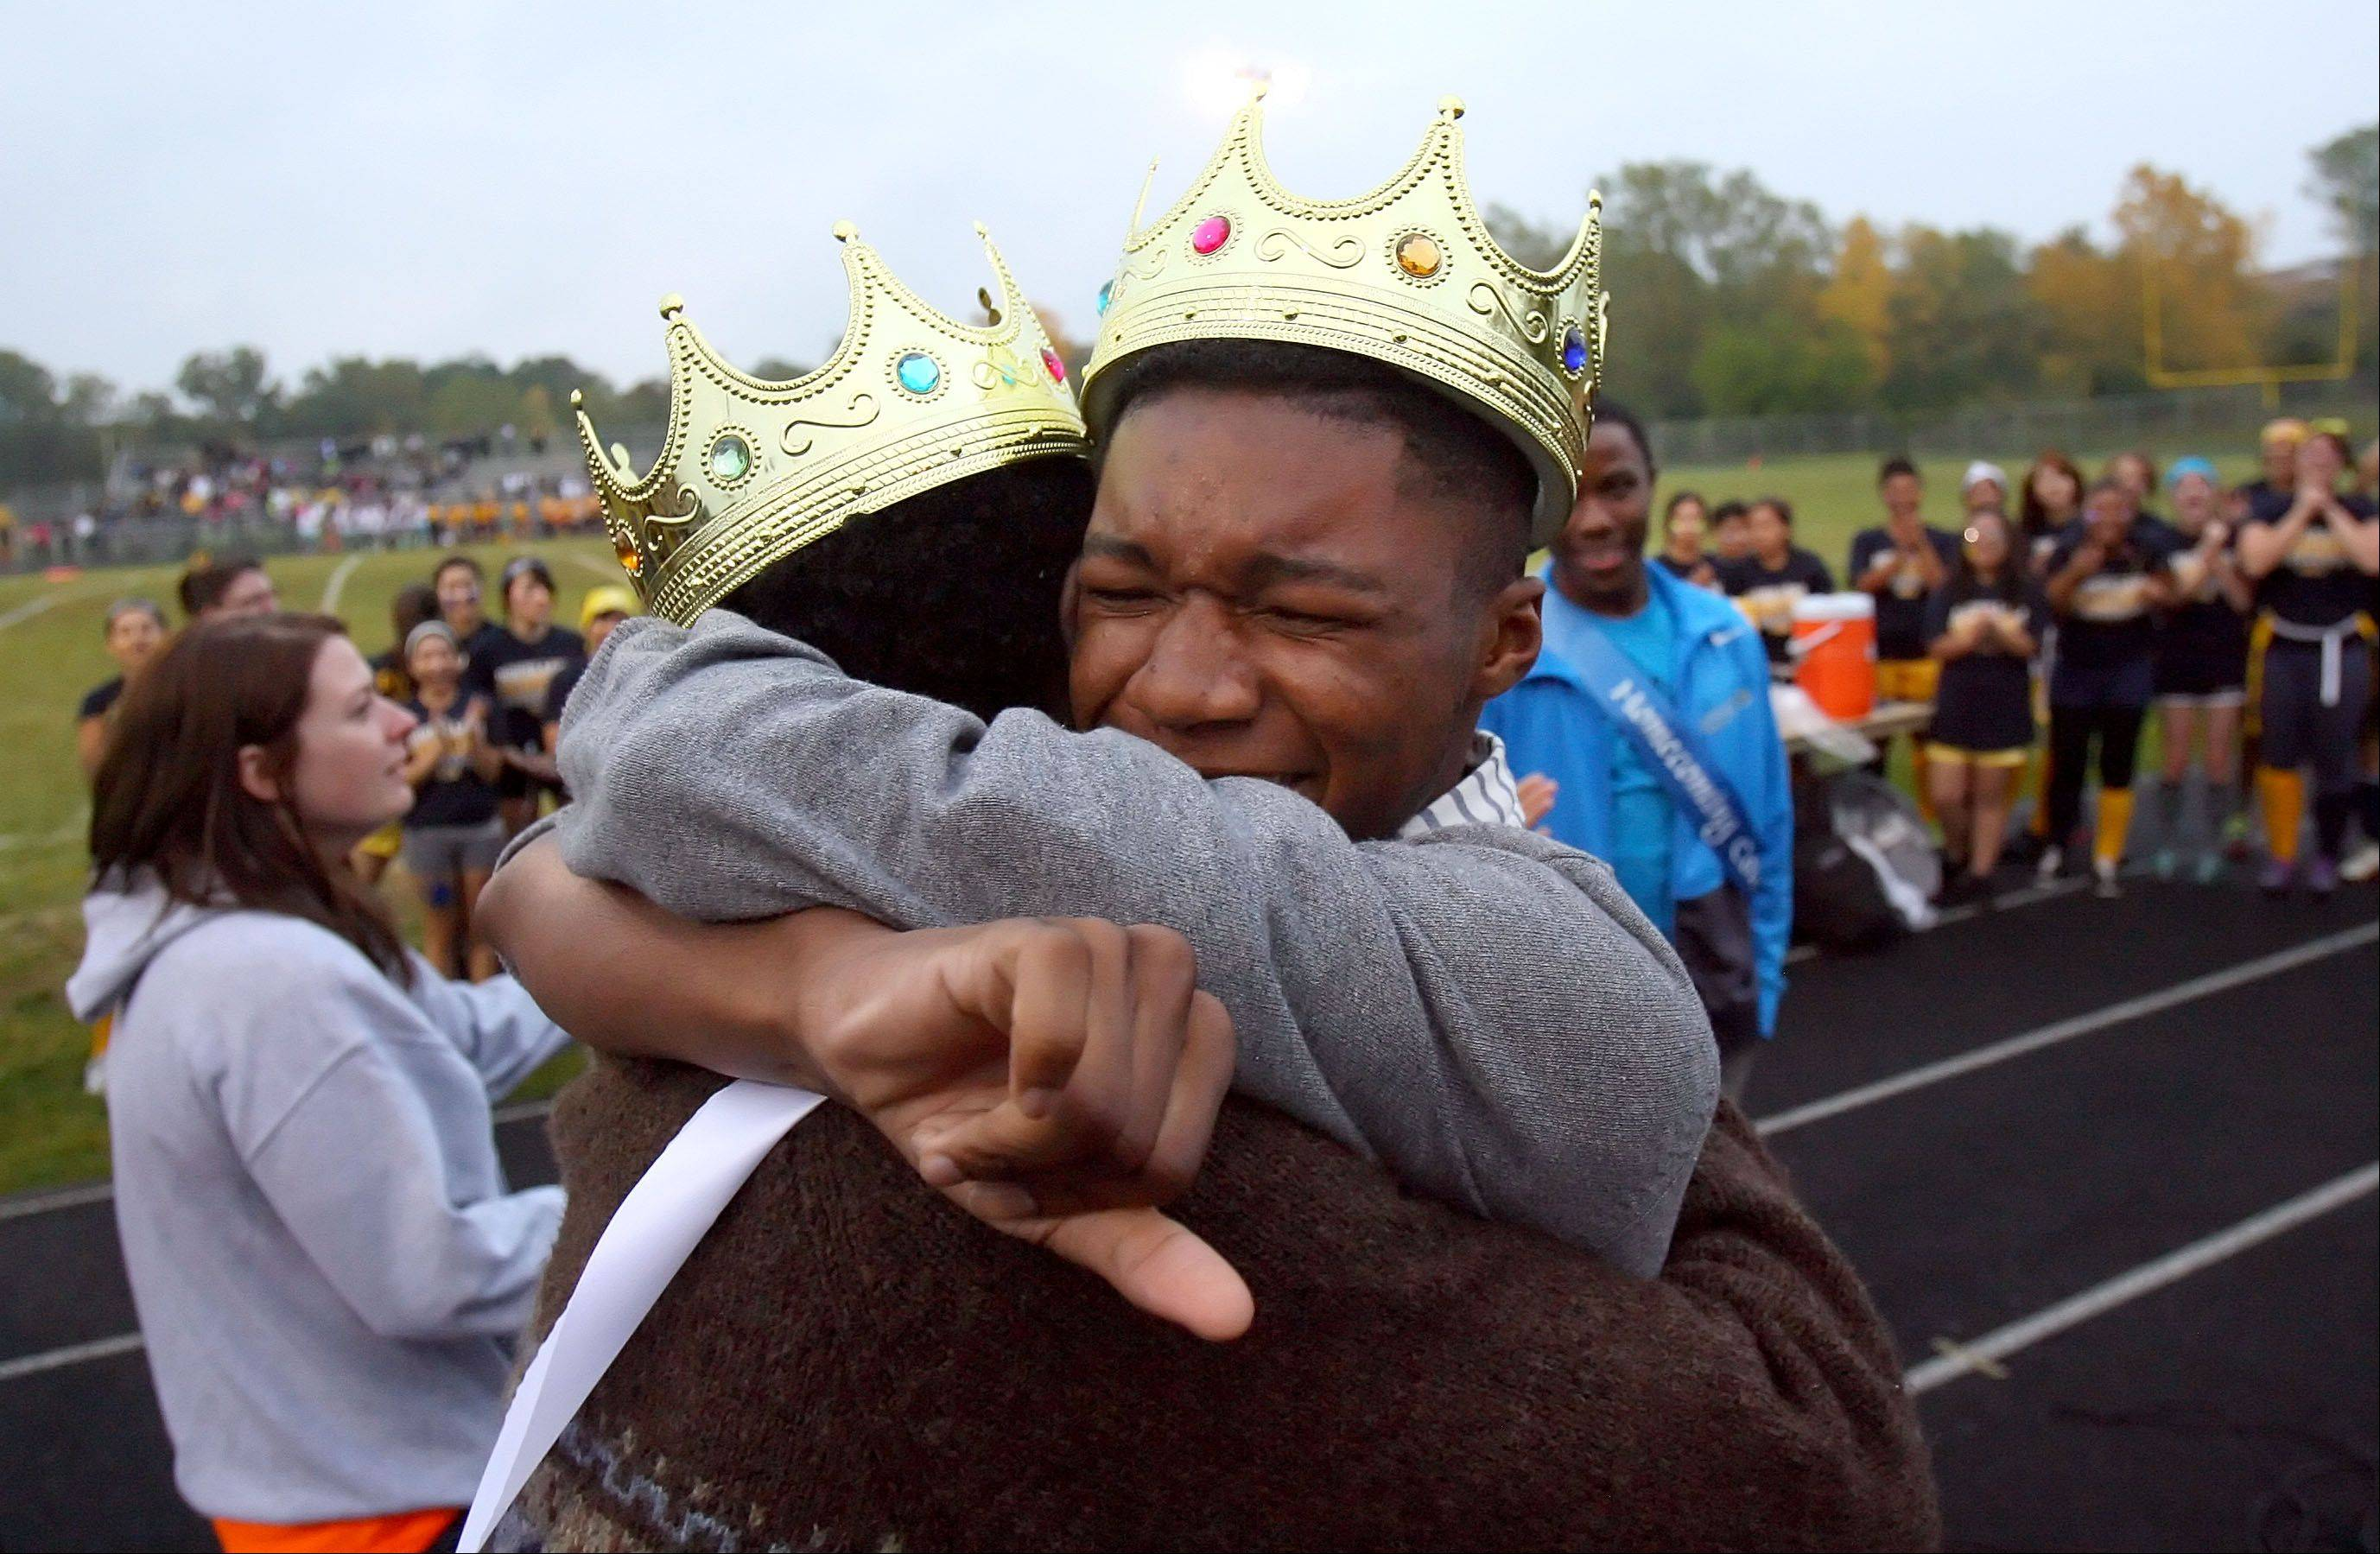 Bryant Jenkins, left, and Bougest Sutton hug after being crowned homecoming royalty during halftime of the Powder-Puff Extravaganza at Round Lake High School.